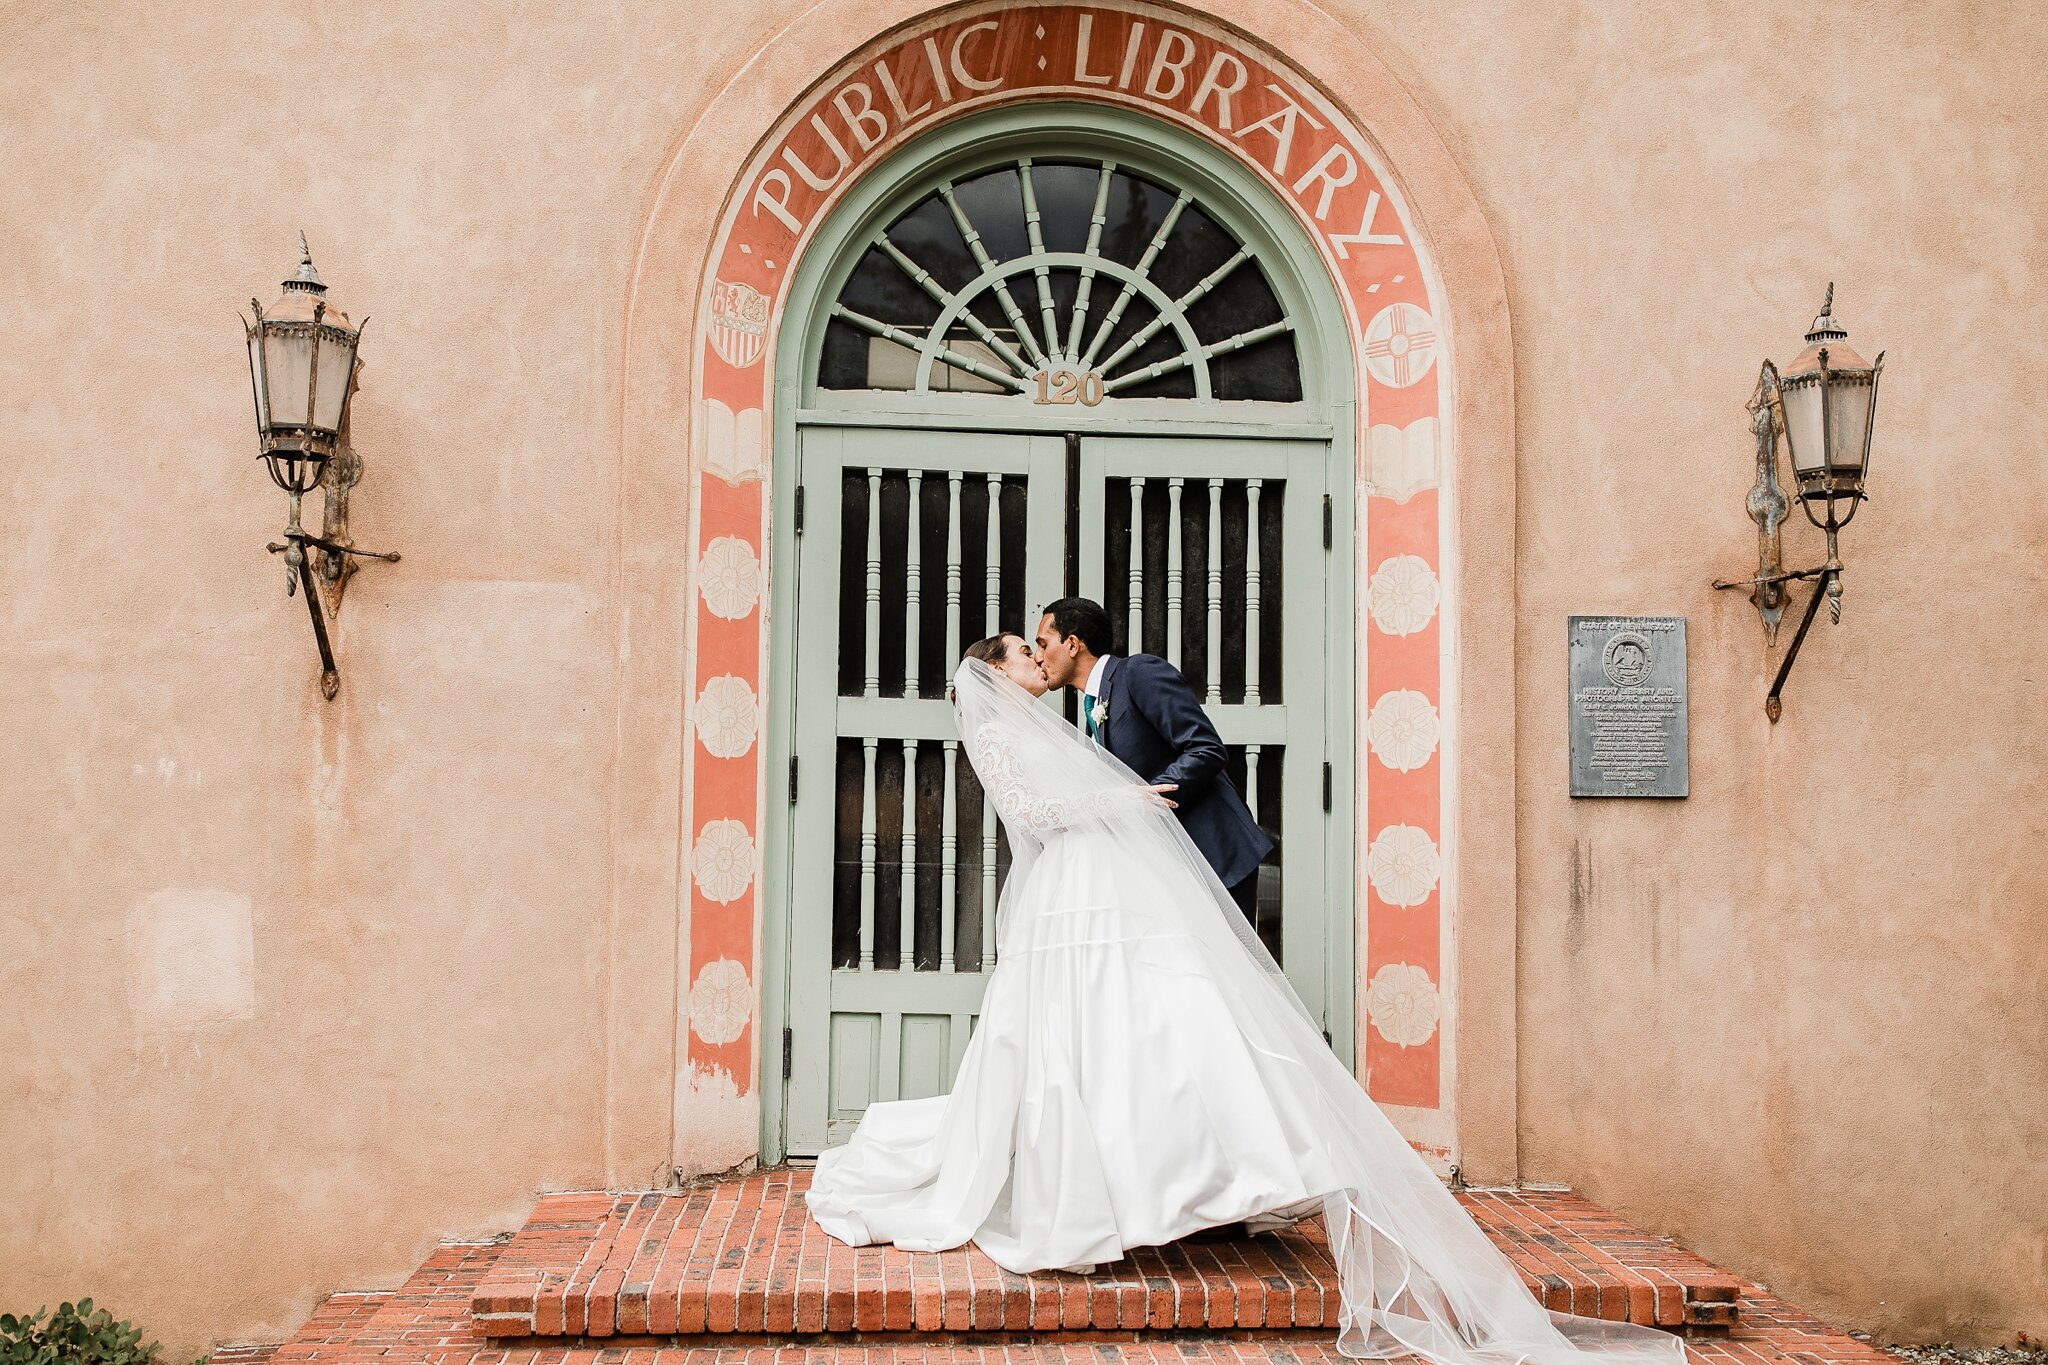 Alicia+lucia+photography+-+albuquerque+wedding+photographer+-+santa+fe+wedding+photography+-+new+mexico+wedding+photographer+-+new+mexico+wedding+-+hindu+wedding+-+catholic+wedding+-+multicultural+wedding+-+santa+fe+wedding_0075.jpg